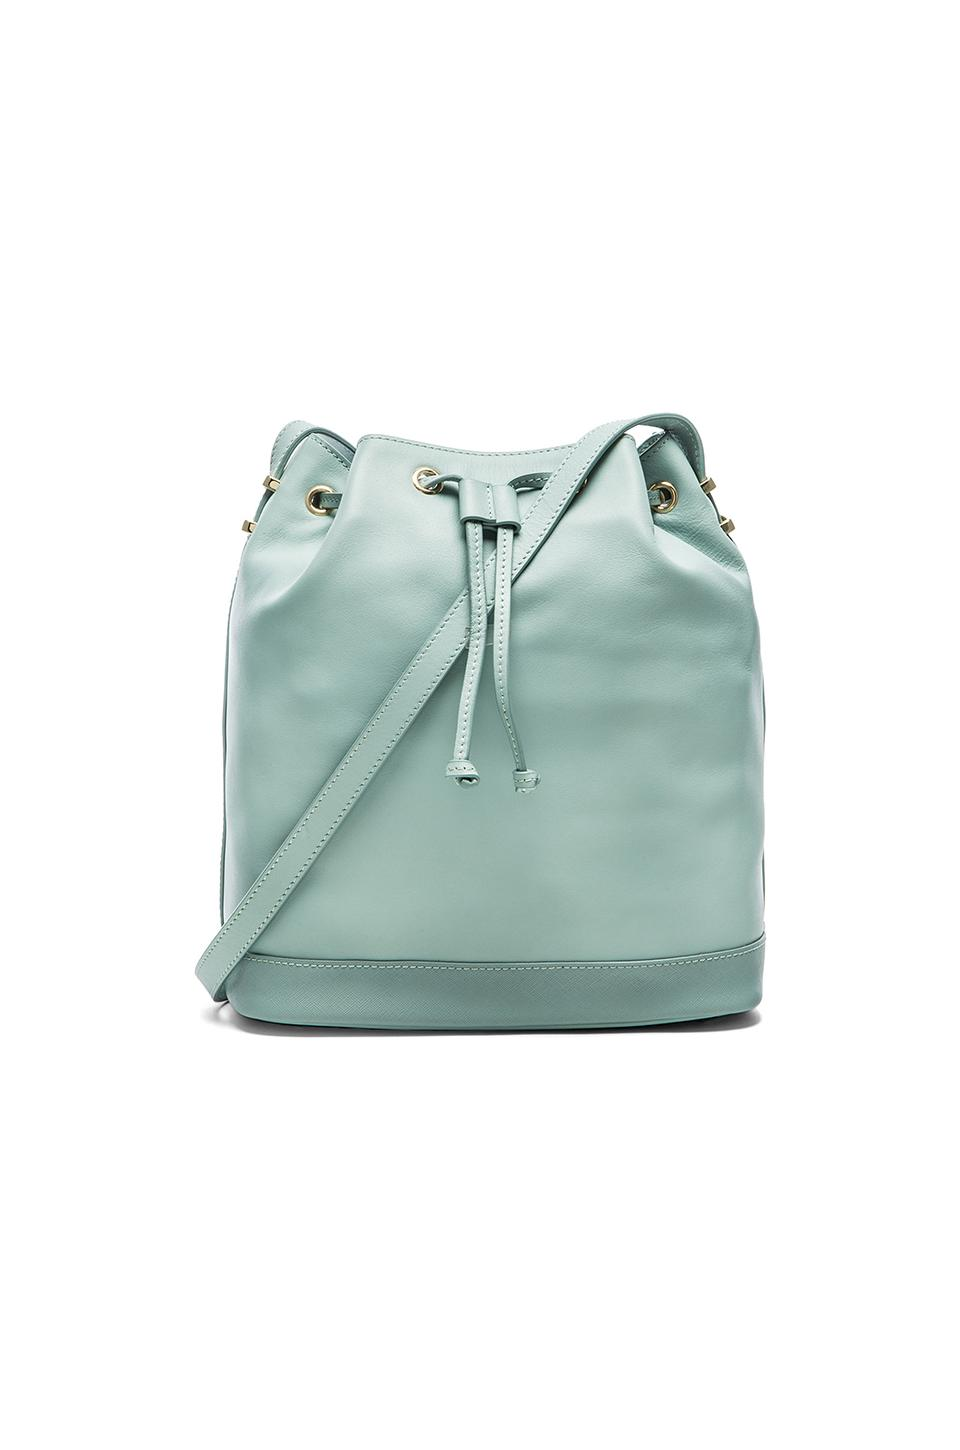 Bag Of Ice Price Benah By Karen Walker Enid Bucket Bag In Ice Mint From Revolve